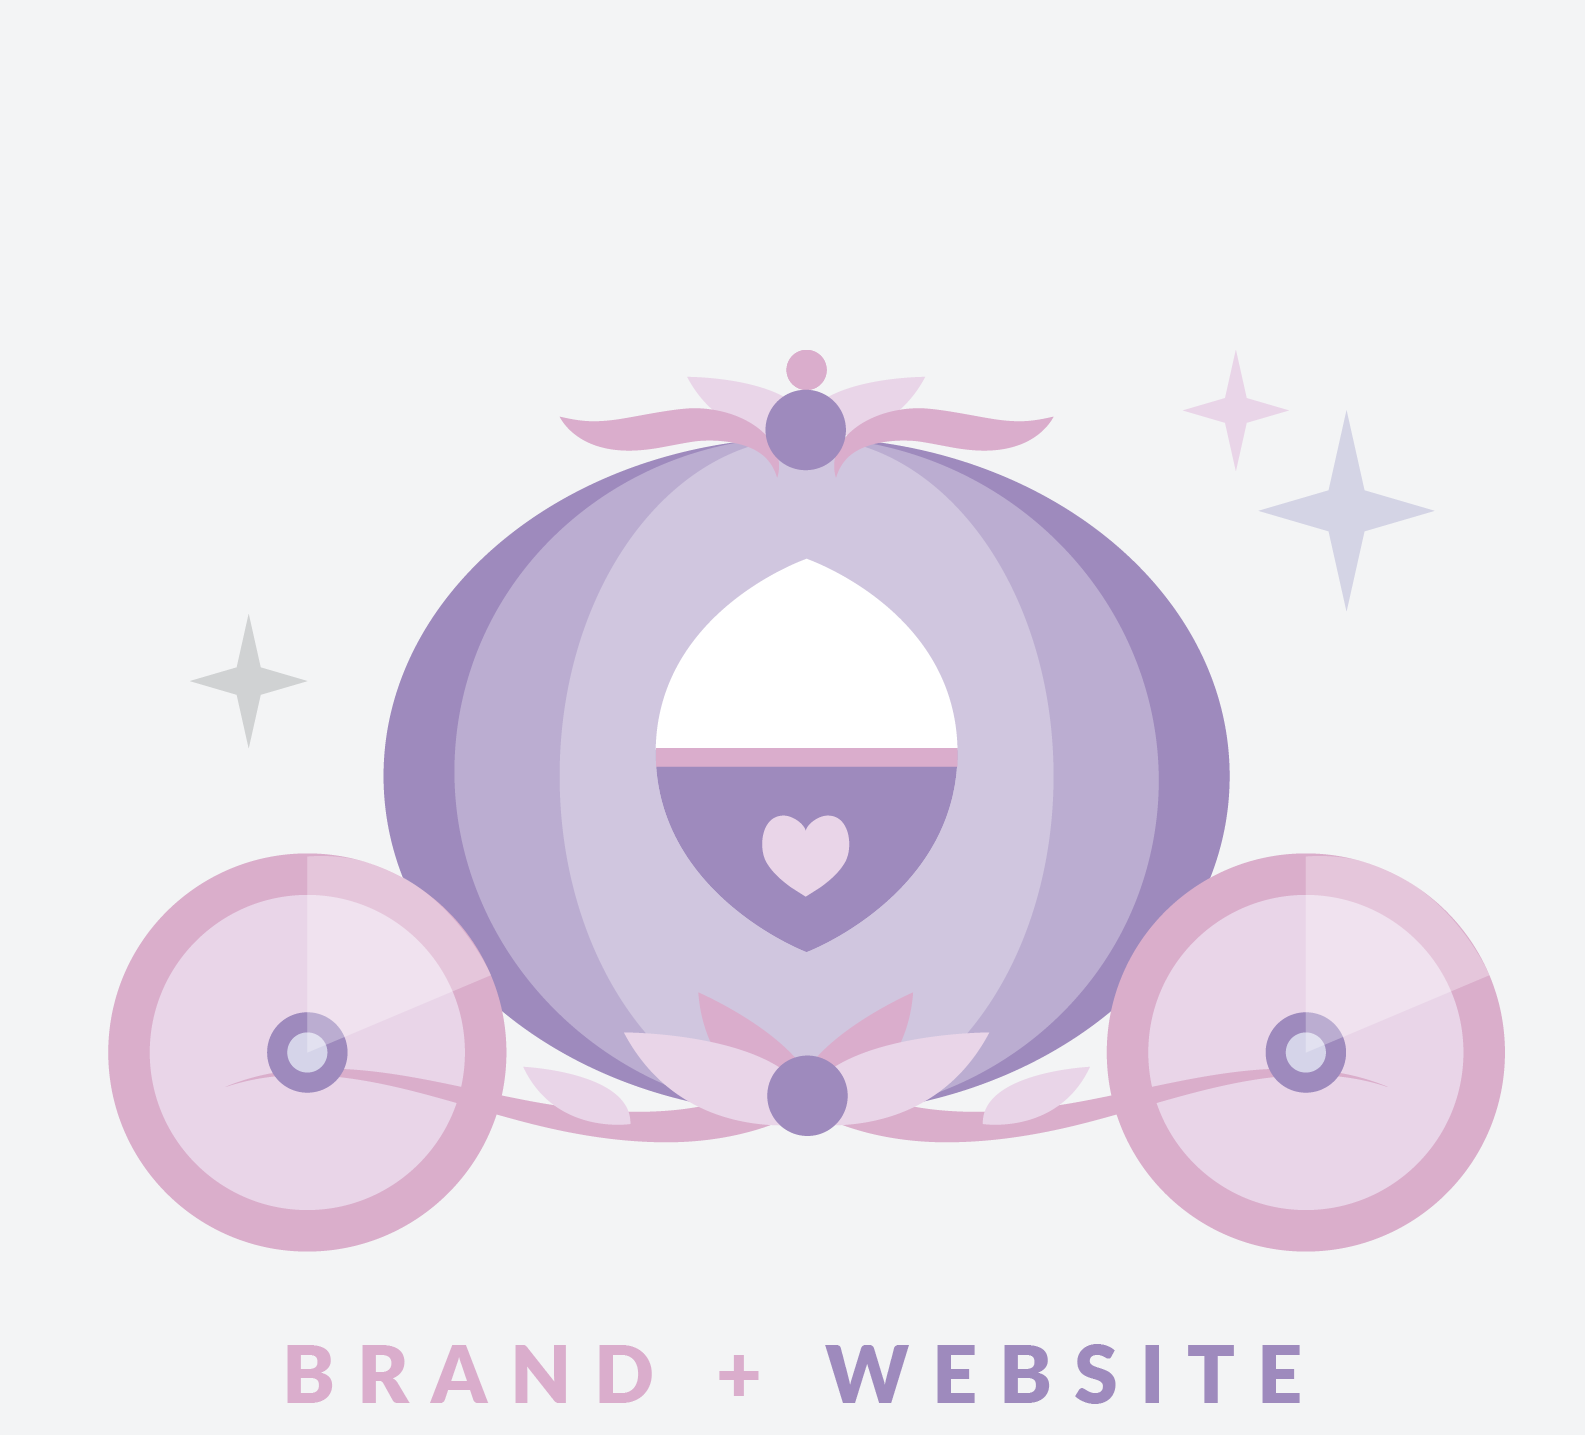 BIBBIDI BOBBIDI - Transform your online presence so you can finally be seen as the expert you are. Ditch the hobbyist look and get a brand and website that screams